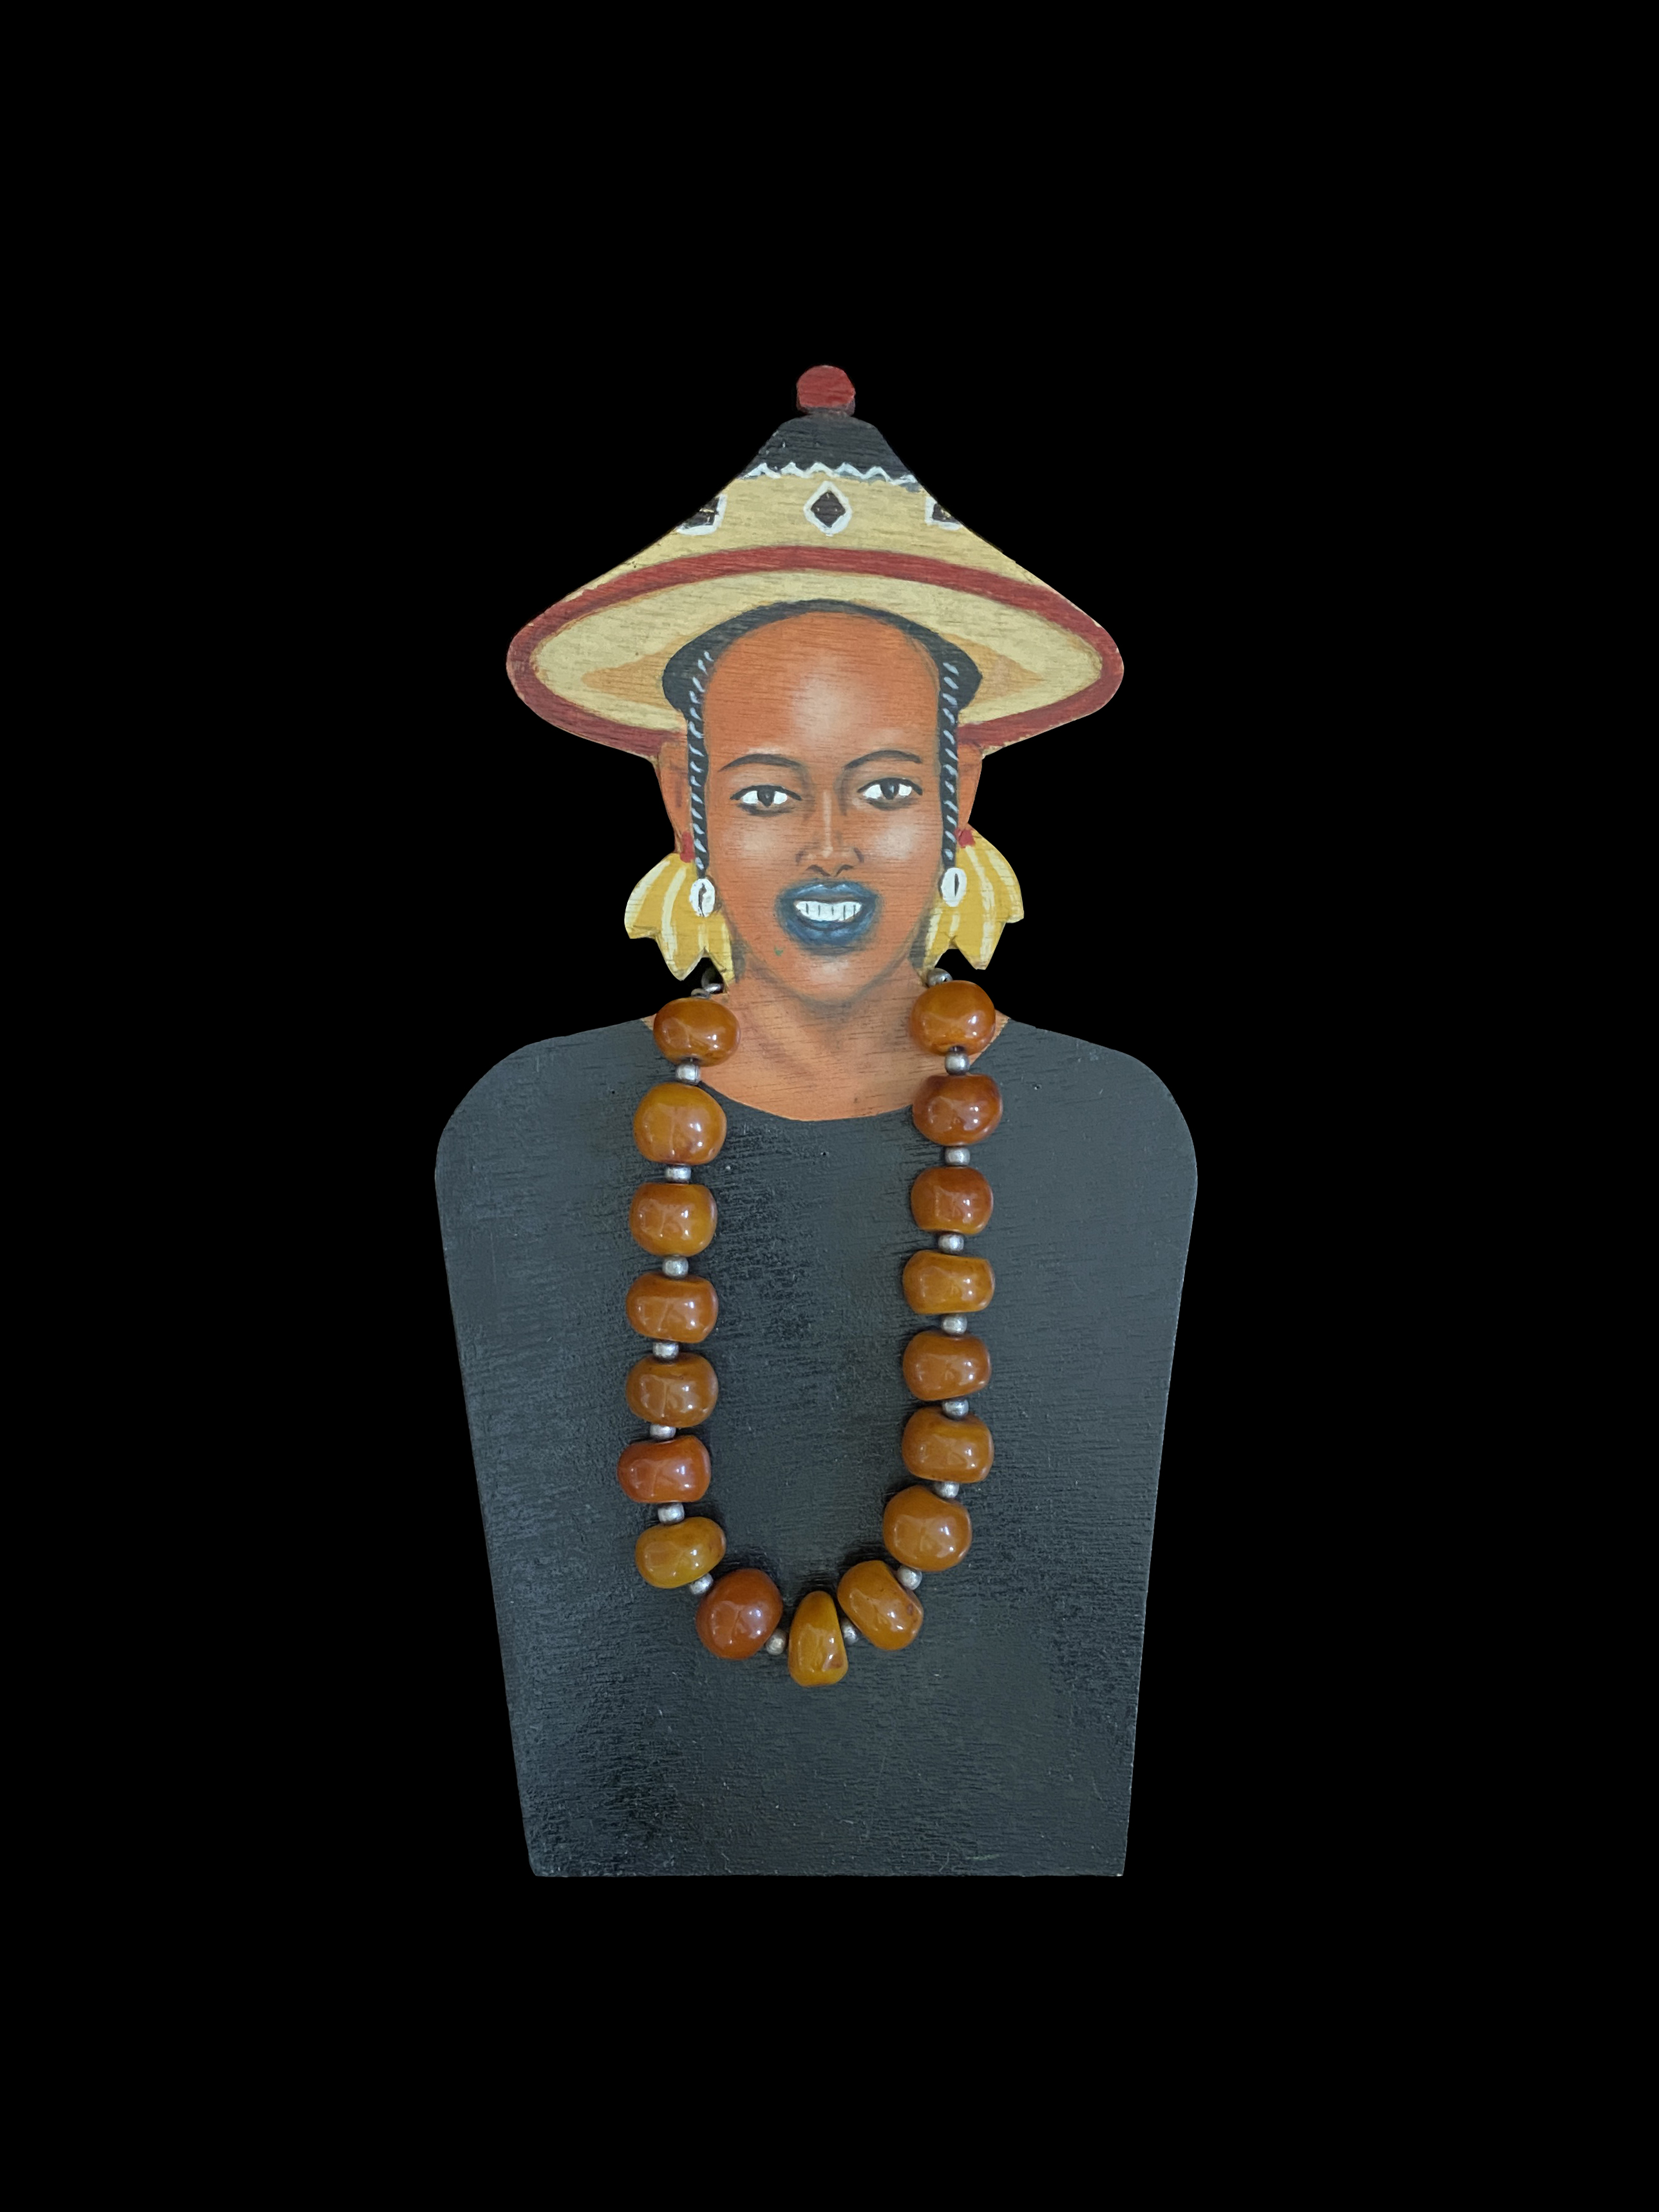 Hand Painted Jewelry Display 4, Fulani People, Nomads in West Africa